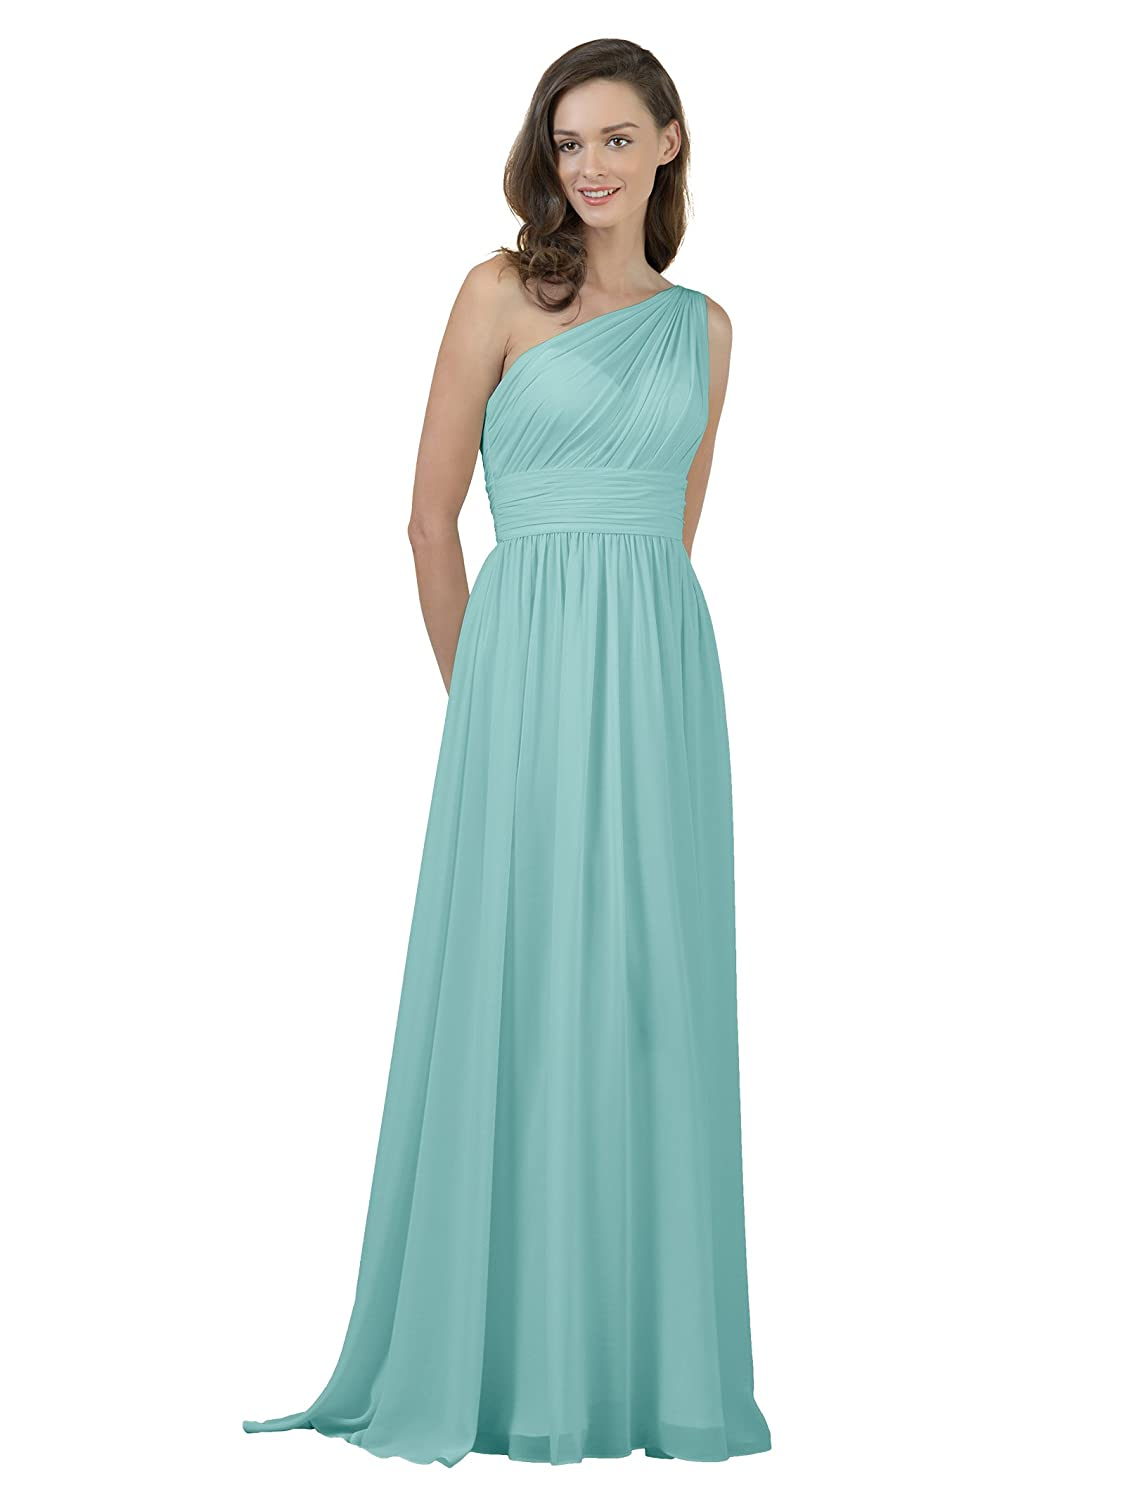 Alicepub One Shoulder Bridesmaid Dress for Women Long Evening Party ...